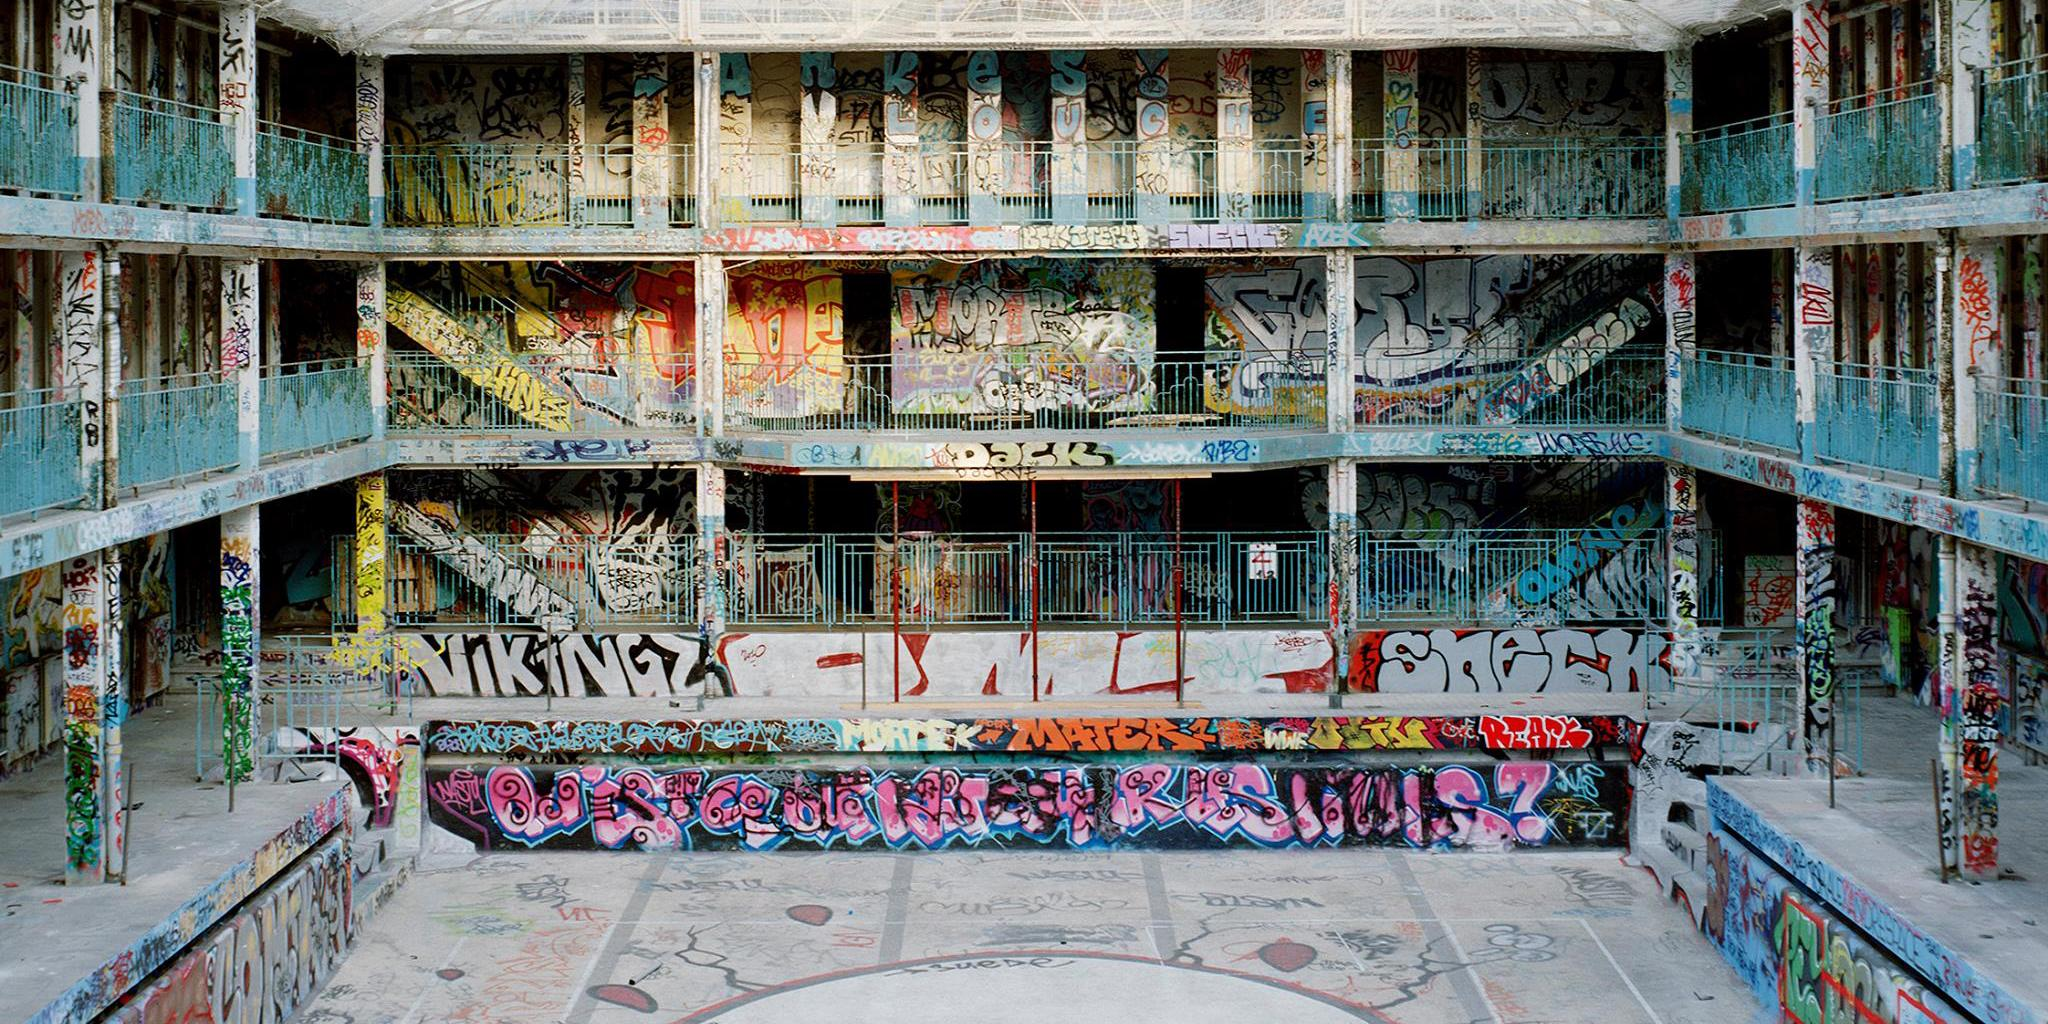 A work by Does - Molitor paris france 1